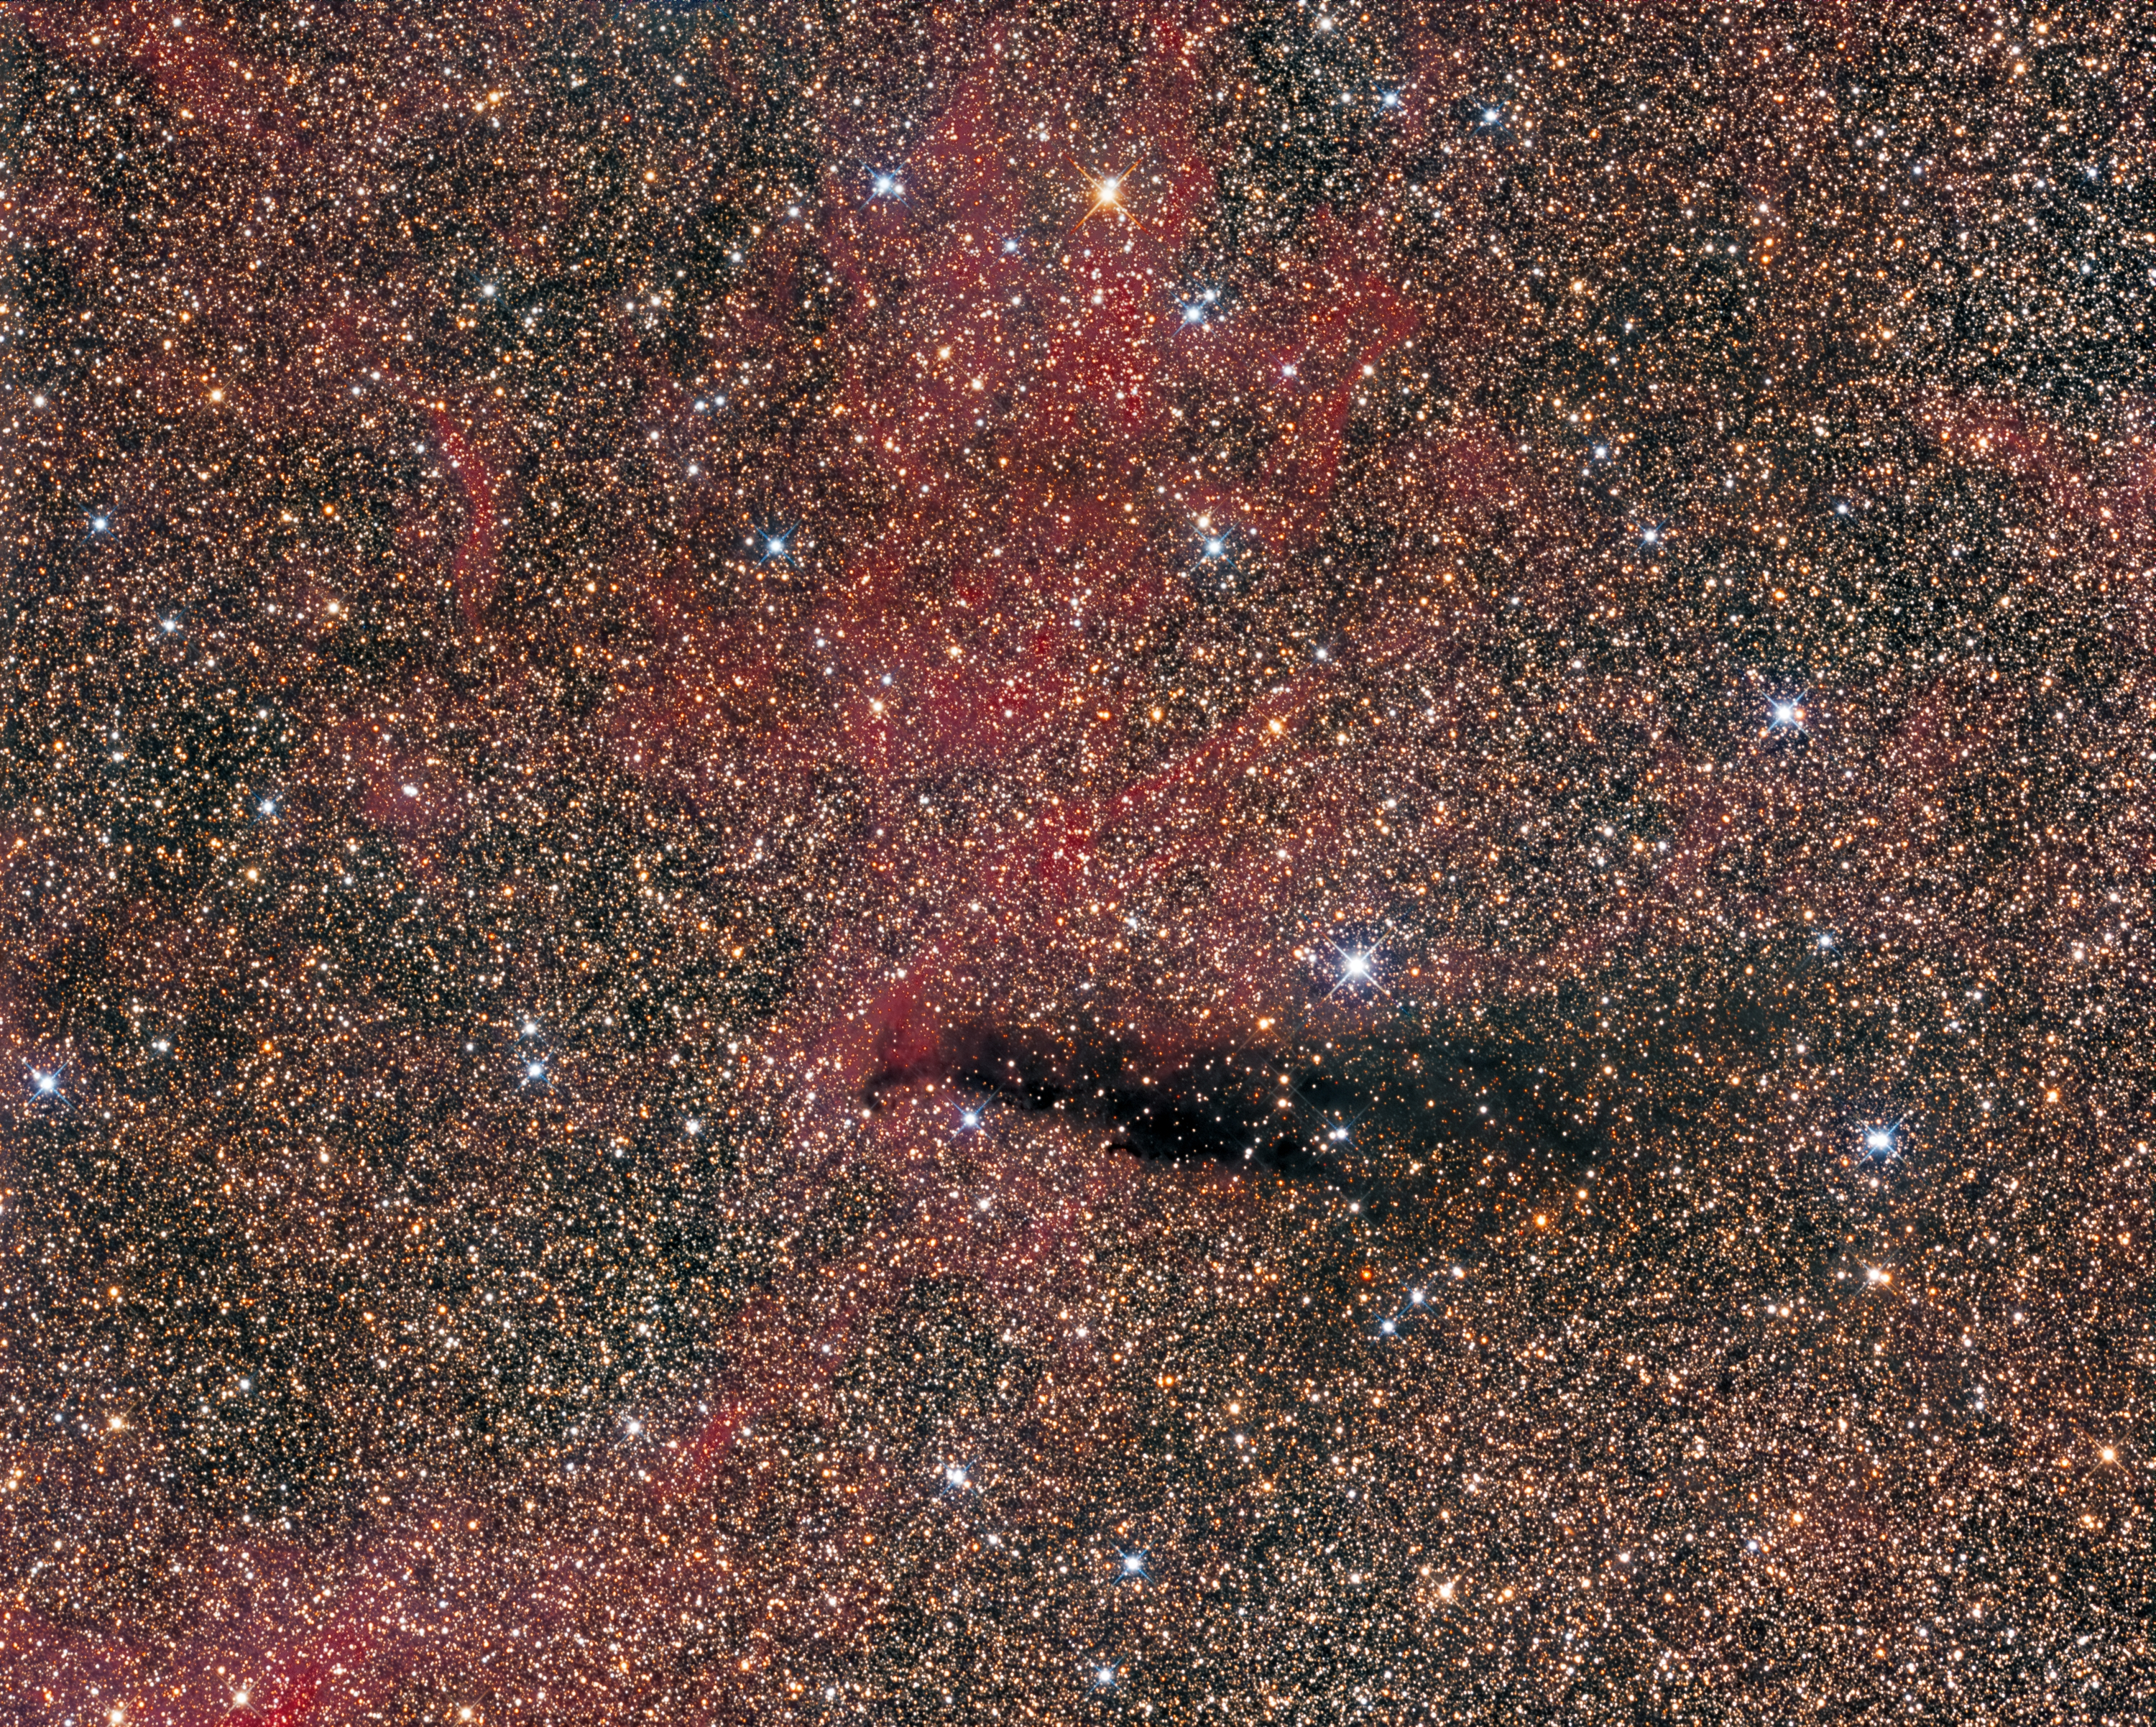 Barnard 145 (Cygnus) 2018.jpg - Barnard 145  (Cygnus )* ( June-July 2018 ) * ASA N12 astrograph (f/3.6, 1075mm) *ASA DDM85 mount * G3-16200 CCD EC Moravian * Baader LRGB filter set *  L: 480 minutes R:560 min G:440 min B: 480 min * Subframes acquired unguided (Sequence&Autoslew software):I revisited Barnard 145  almost 8 years laetr from my first image in 2009. Always interested in  Barnard targets and dark nebula.Lying amongst the spiral arms of the Galaxy are numerous clouds of dust and gas.These clouds, commonly known as dark nebulae, absorb light from the stars behindand appear to observers on Earth as blank regions amongst the bright Milky Way.Barnard 145 (LDN 865) is a dark nebula in the constellation Cygnus. The red emission nebula all around  is LBN190, as a  part of Sh2-109.The dark  nebulae are classified,according to their opacity on a scale from1 (only slightly darker than the background Milky Way).Barnard 145 has a quoted size of 35'×6' and opacity of 4.